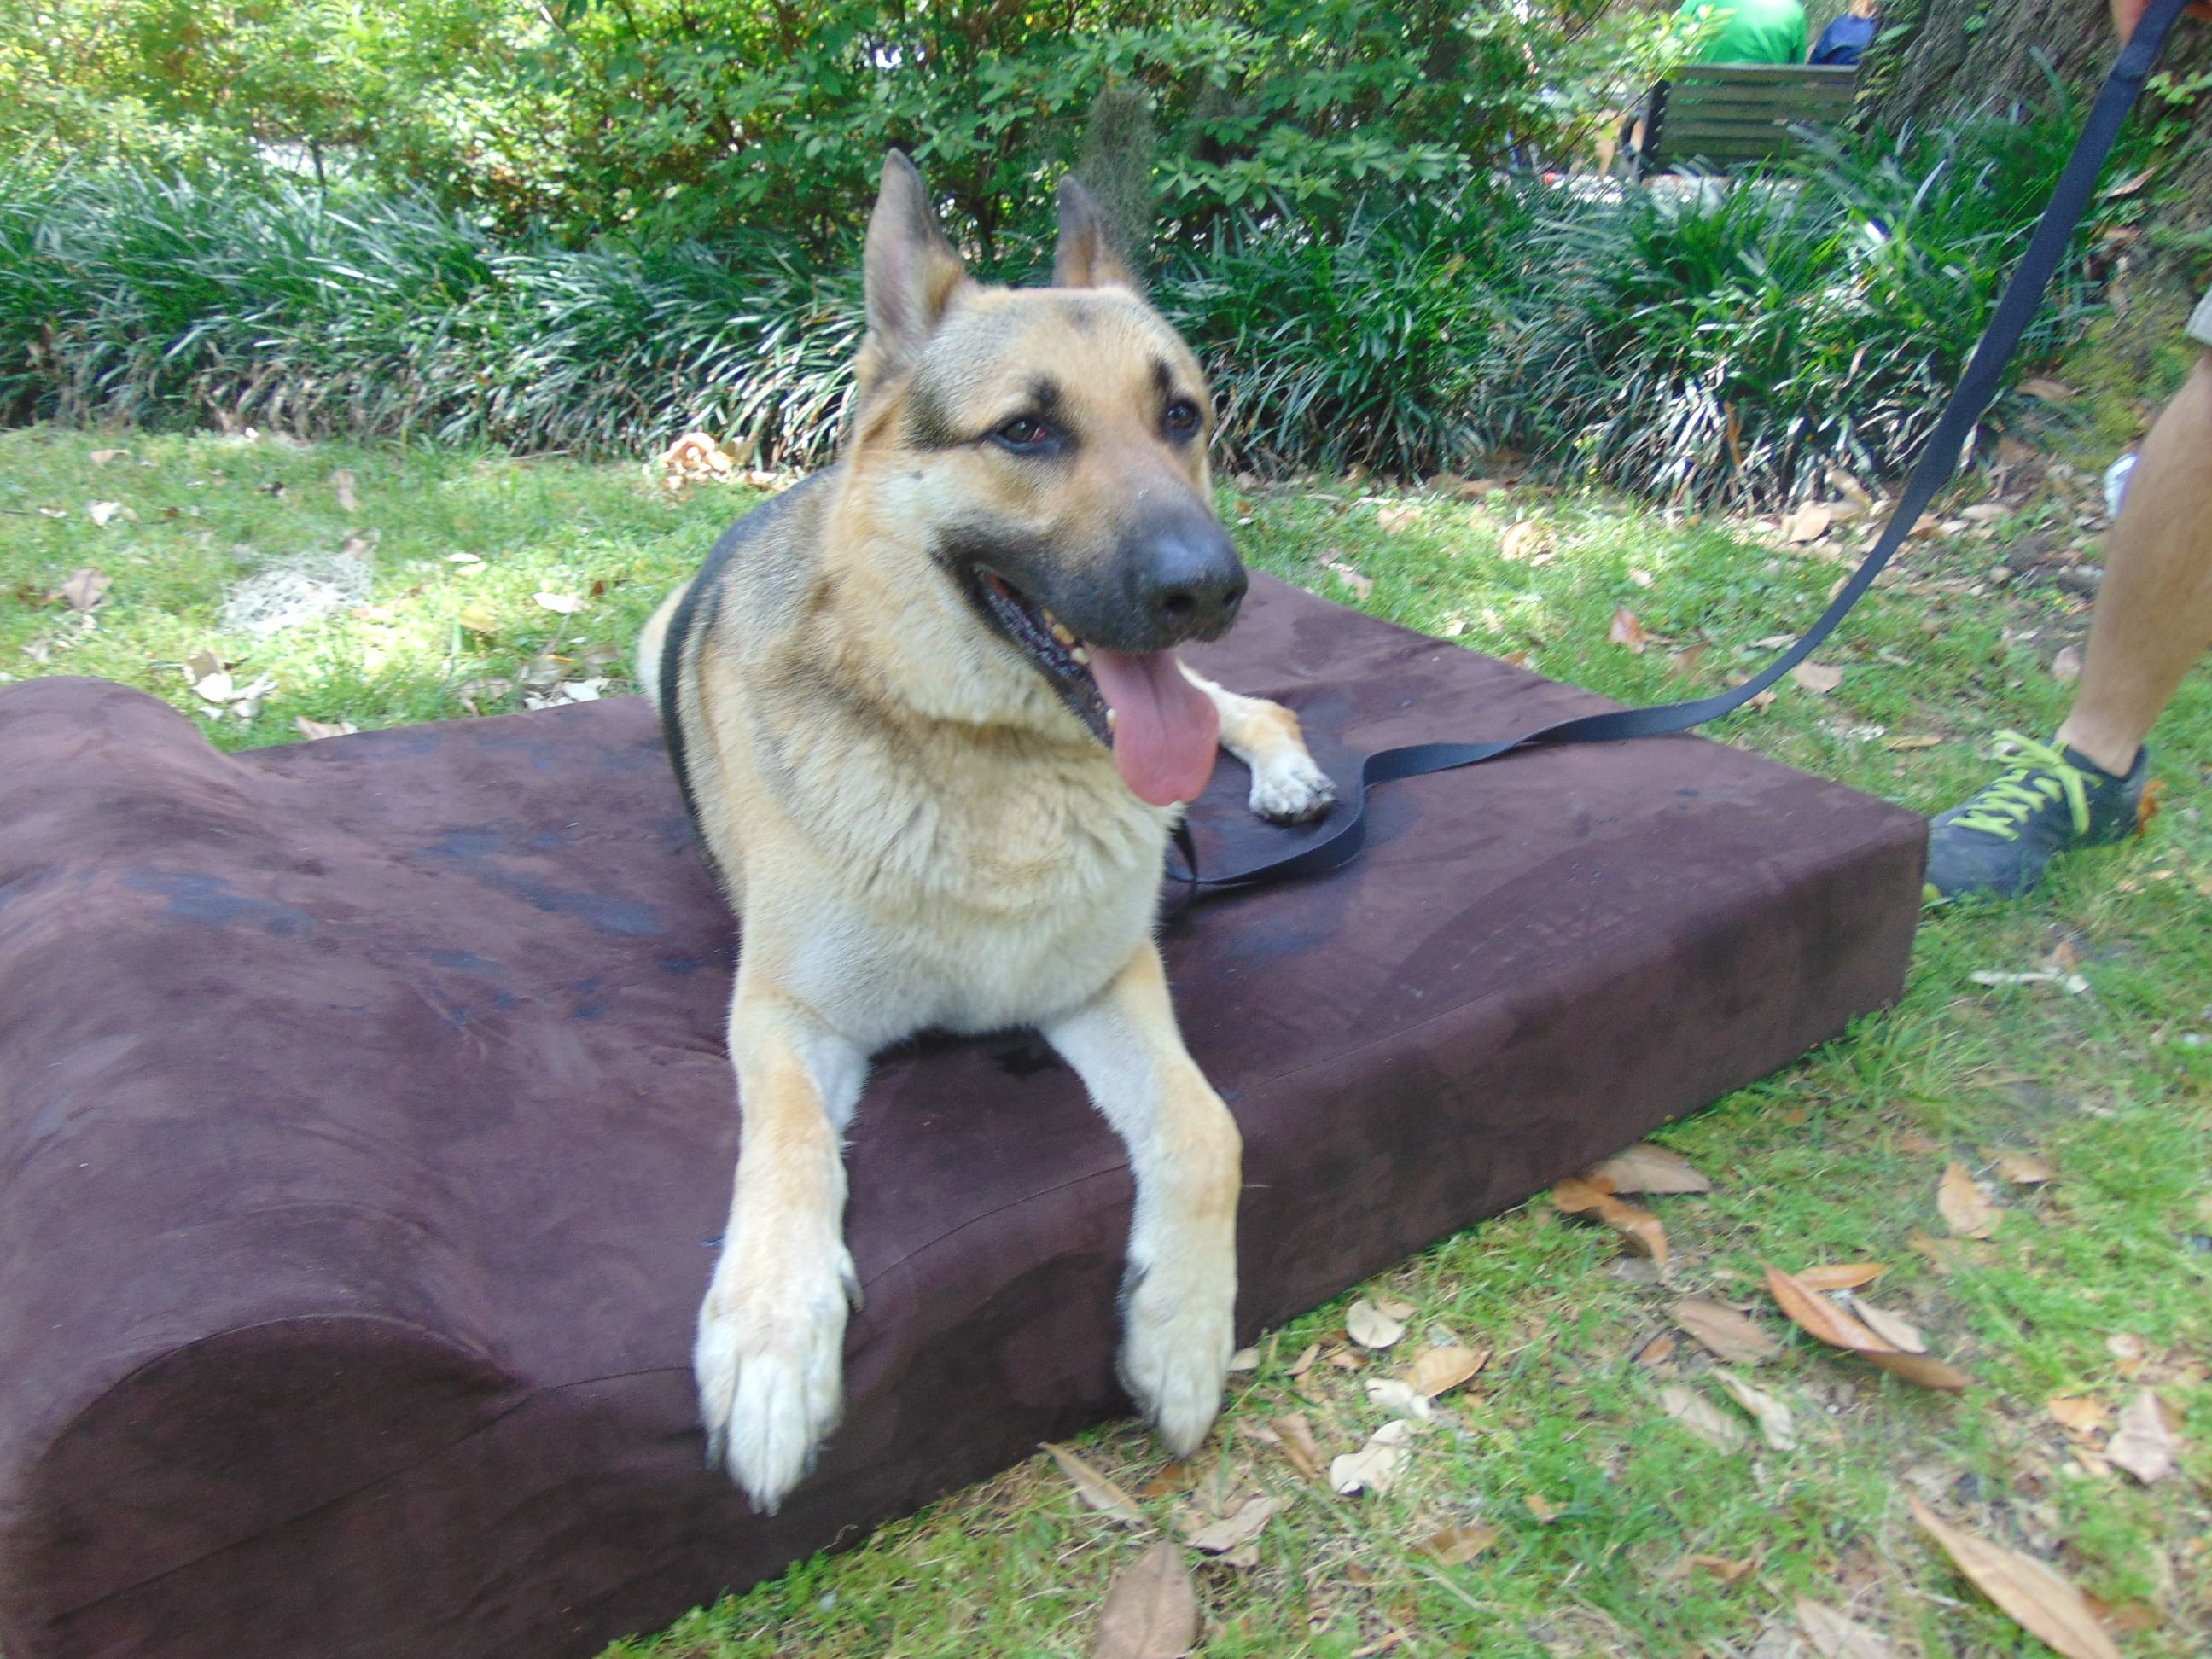 onewayfarms bed in orthopedic canada beds mattress com the dog snoozing with casper style